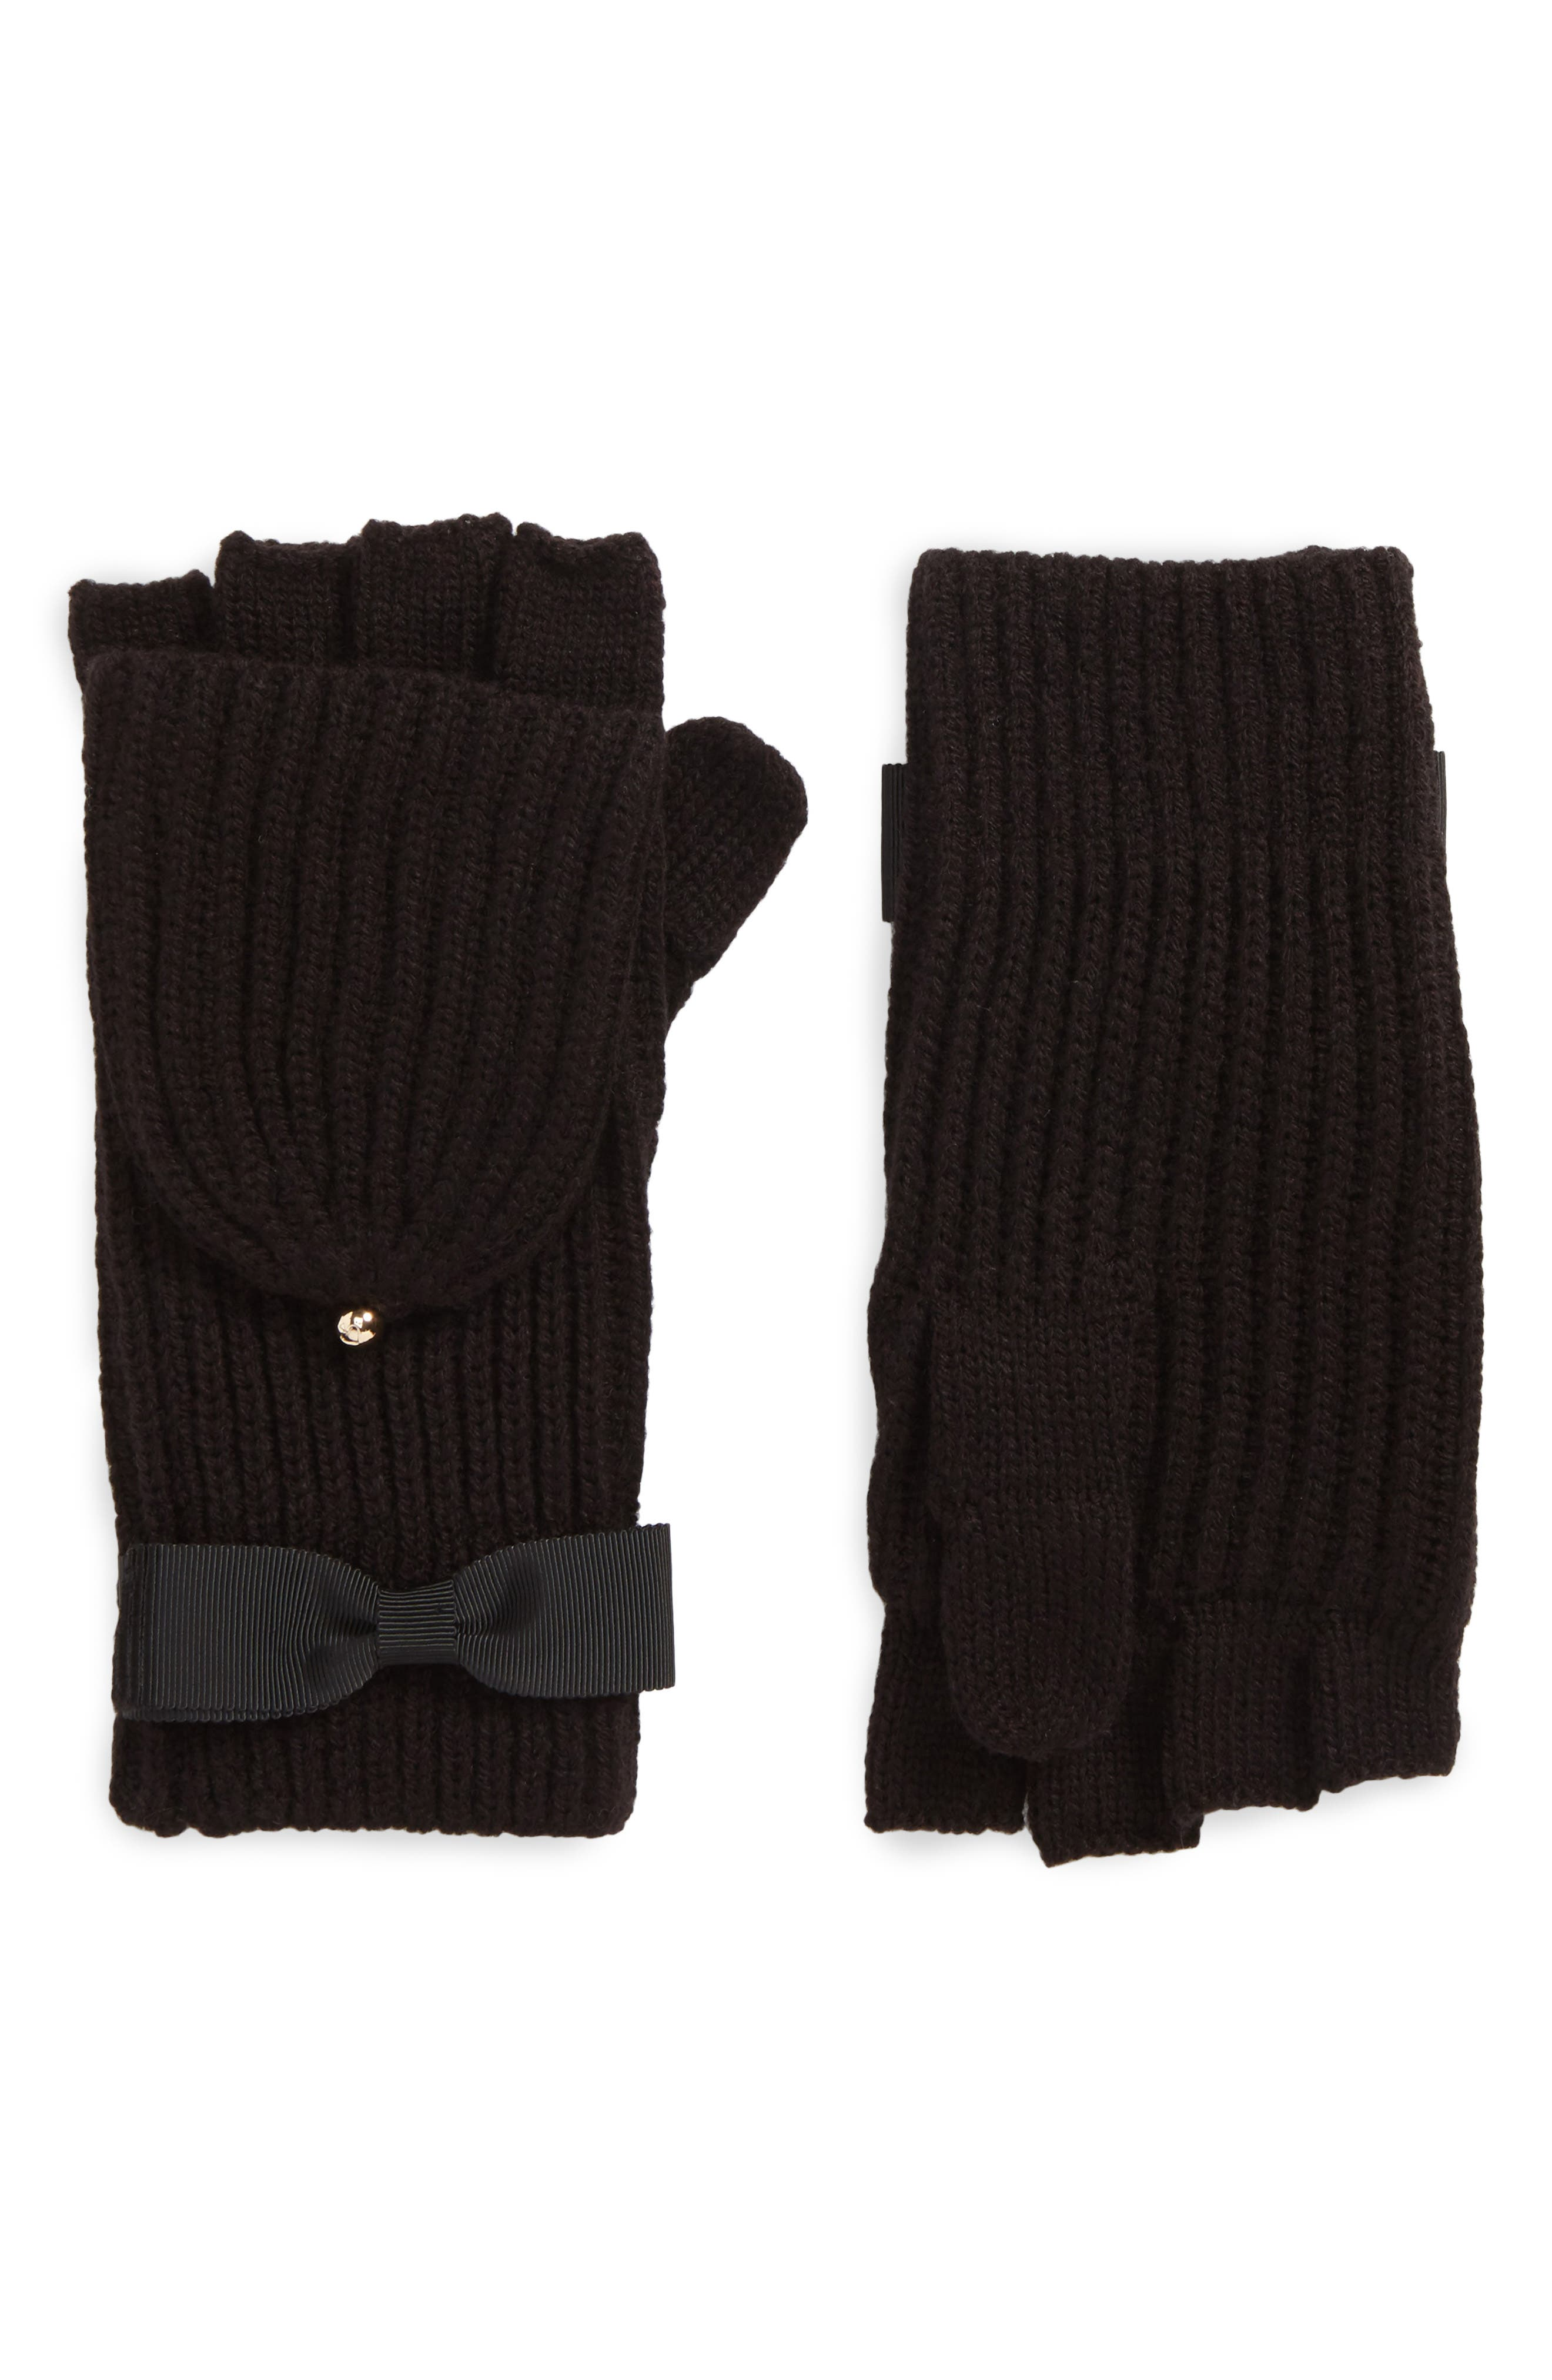 grosgrain bow convertible knit mittens,                             Main thumbnail 1, color,                             001